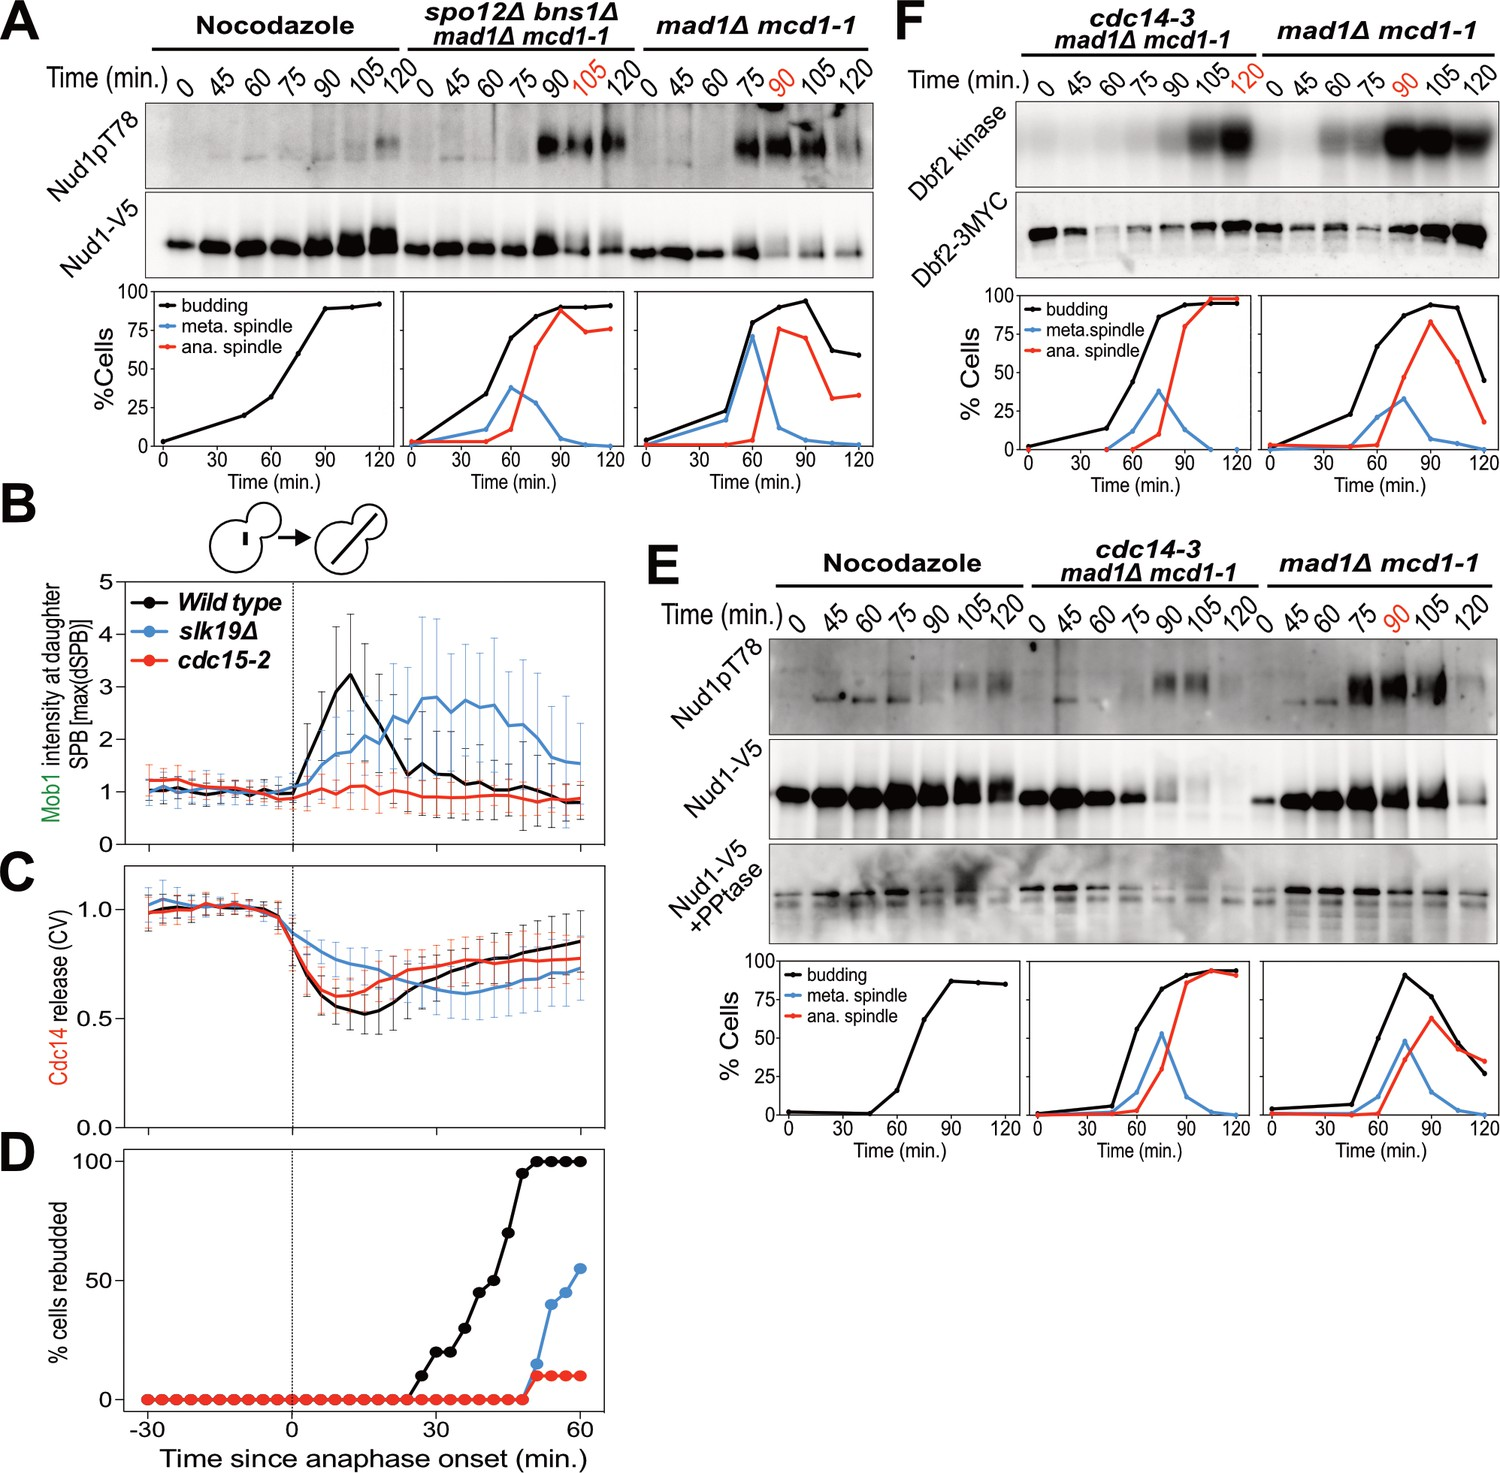 hight resolution of the fear network promotes men signaling by activating cdc14